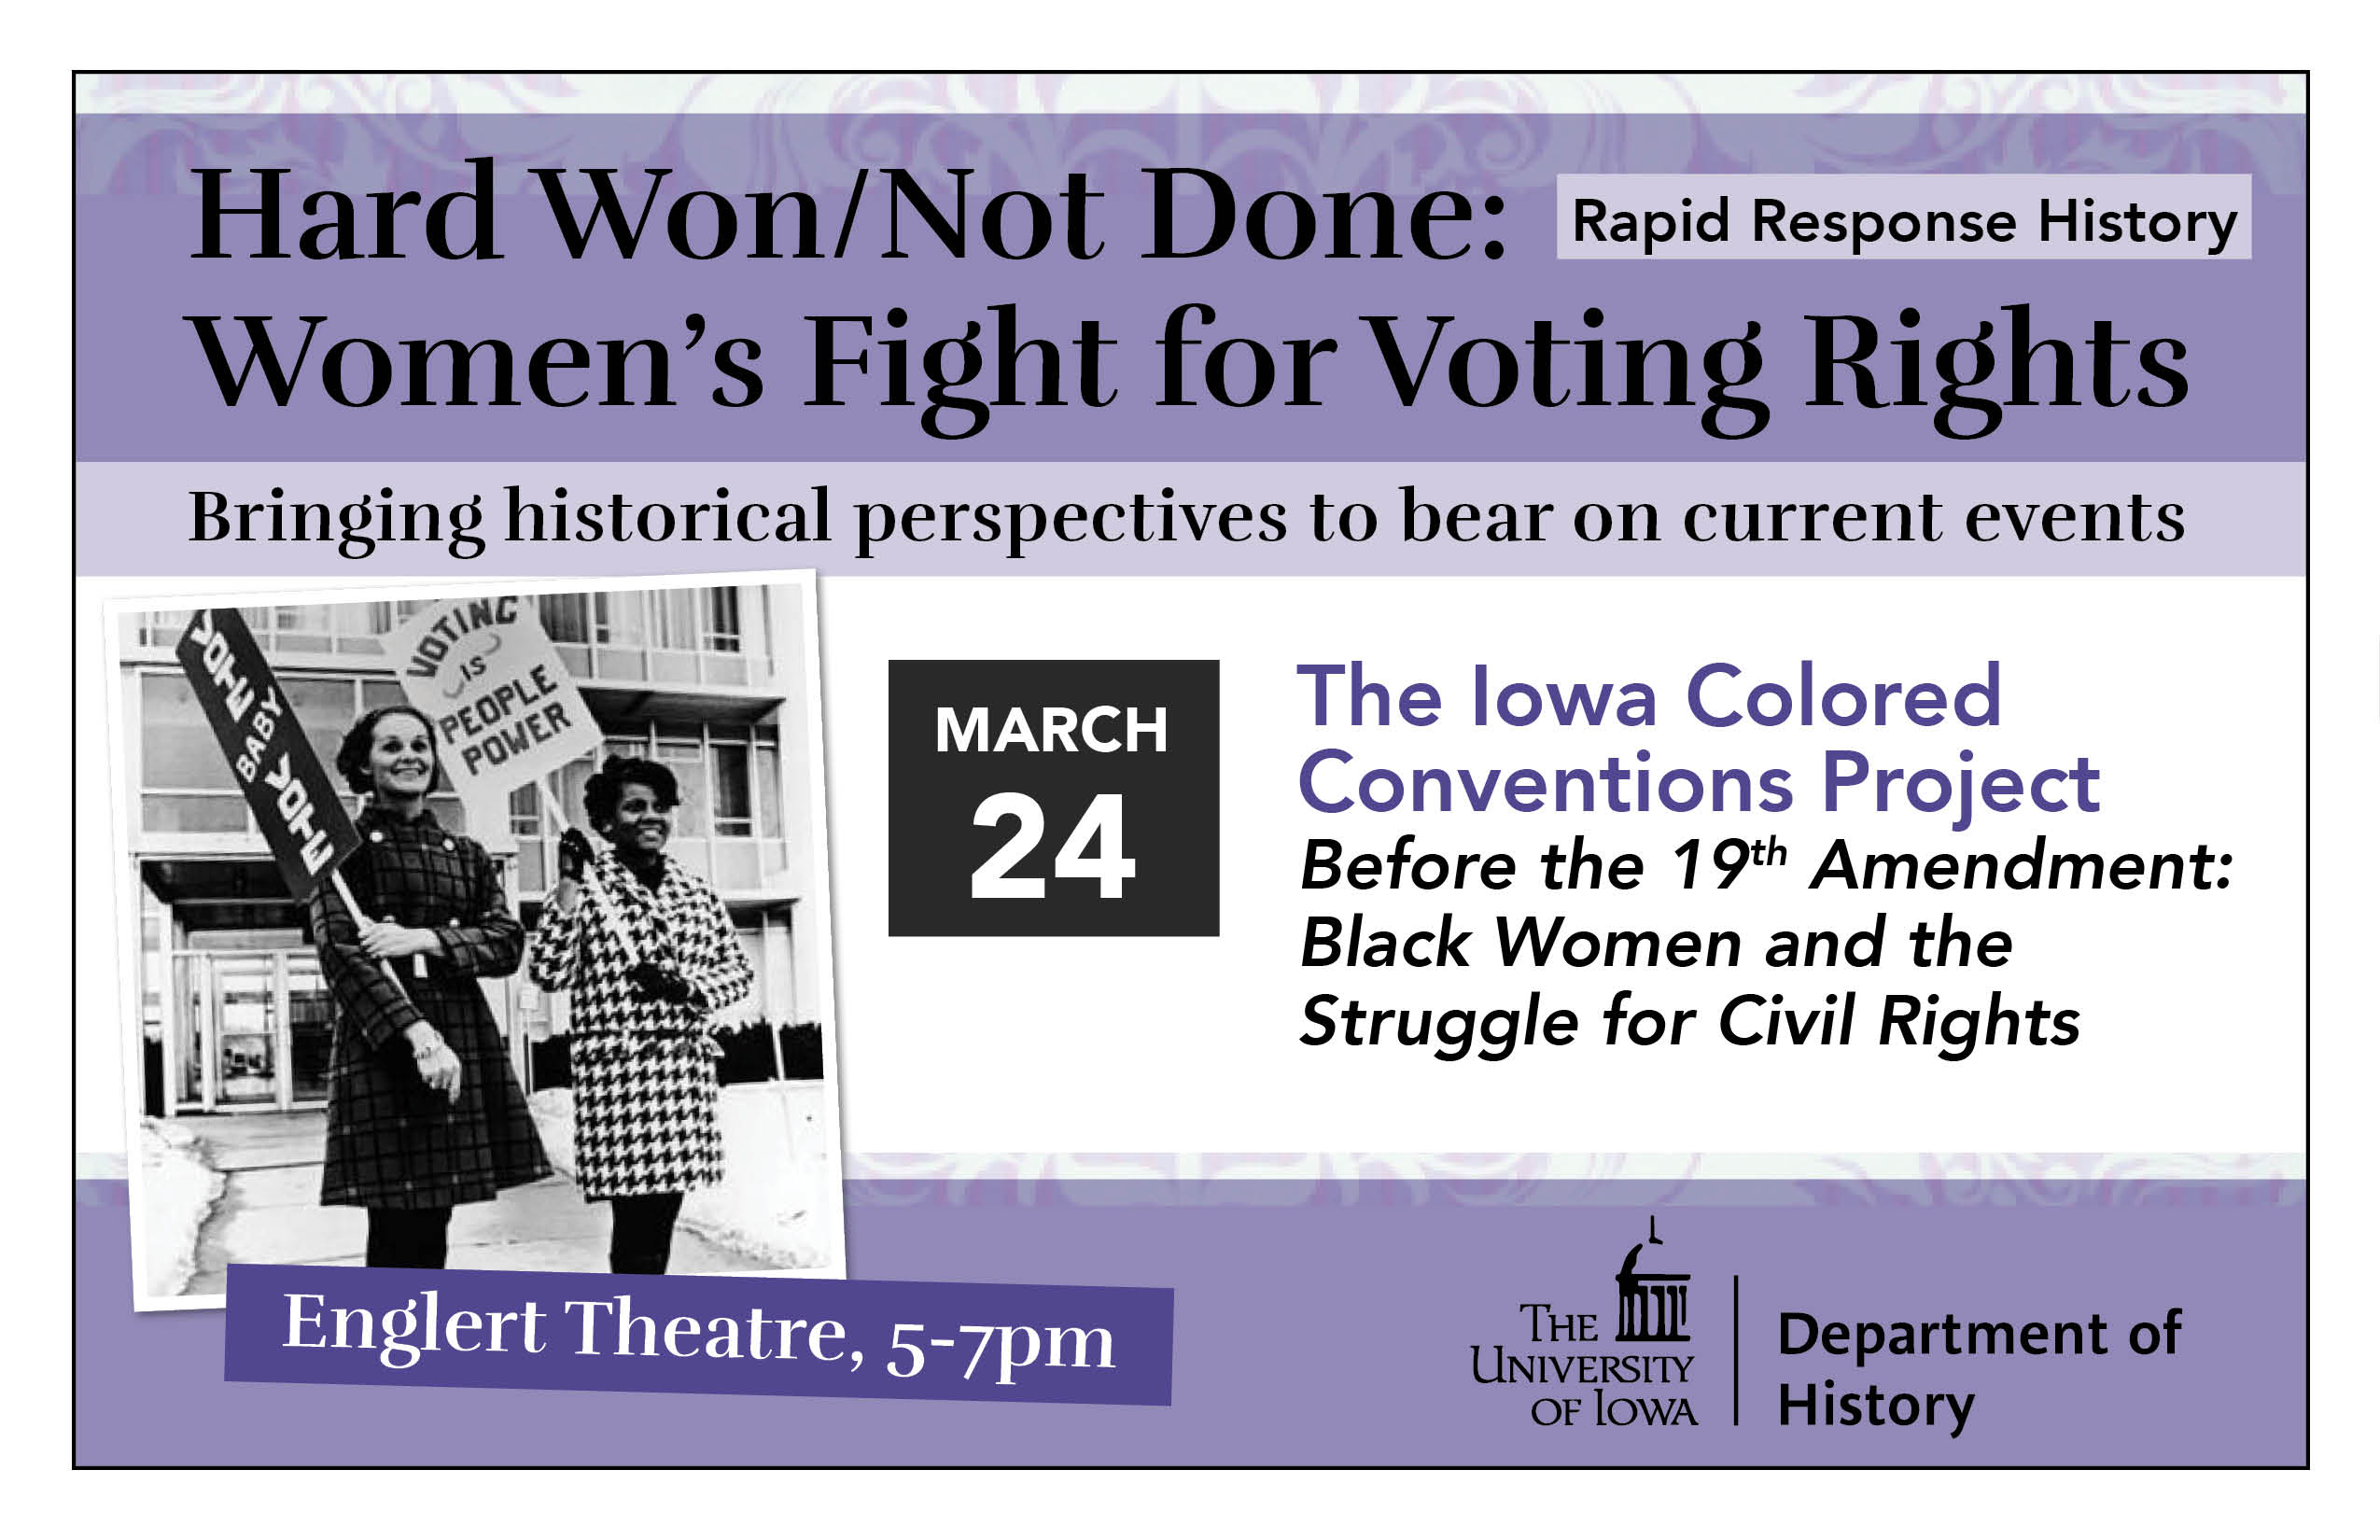 Before the 19th Amendment: Black Women and the Struggle for Civil Rights